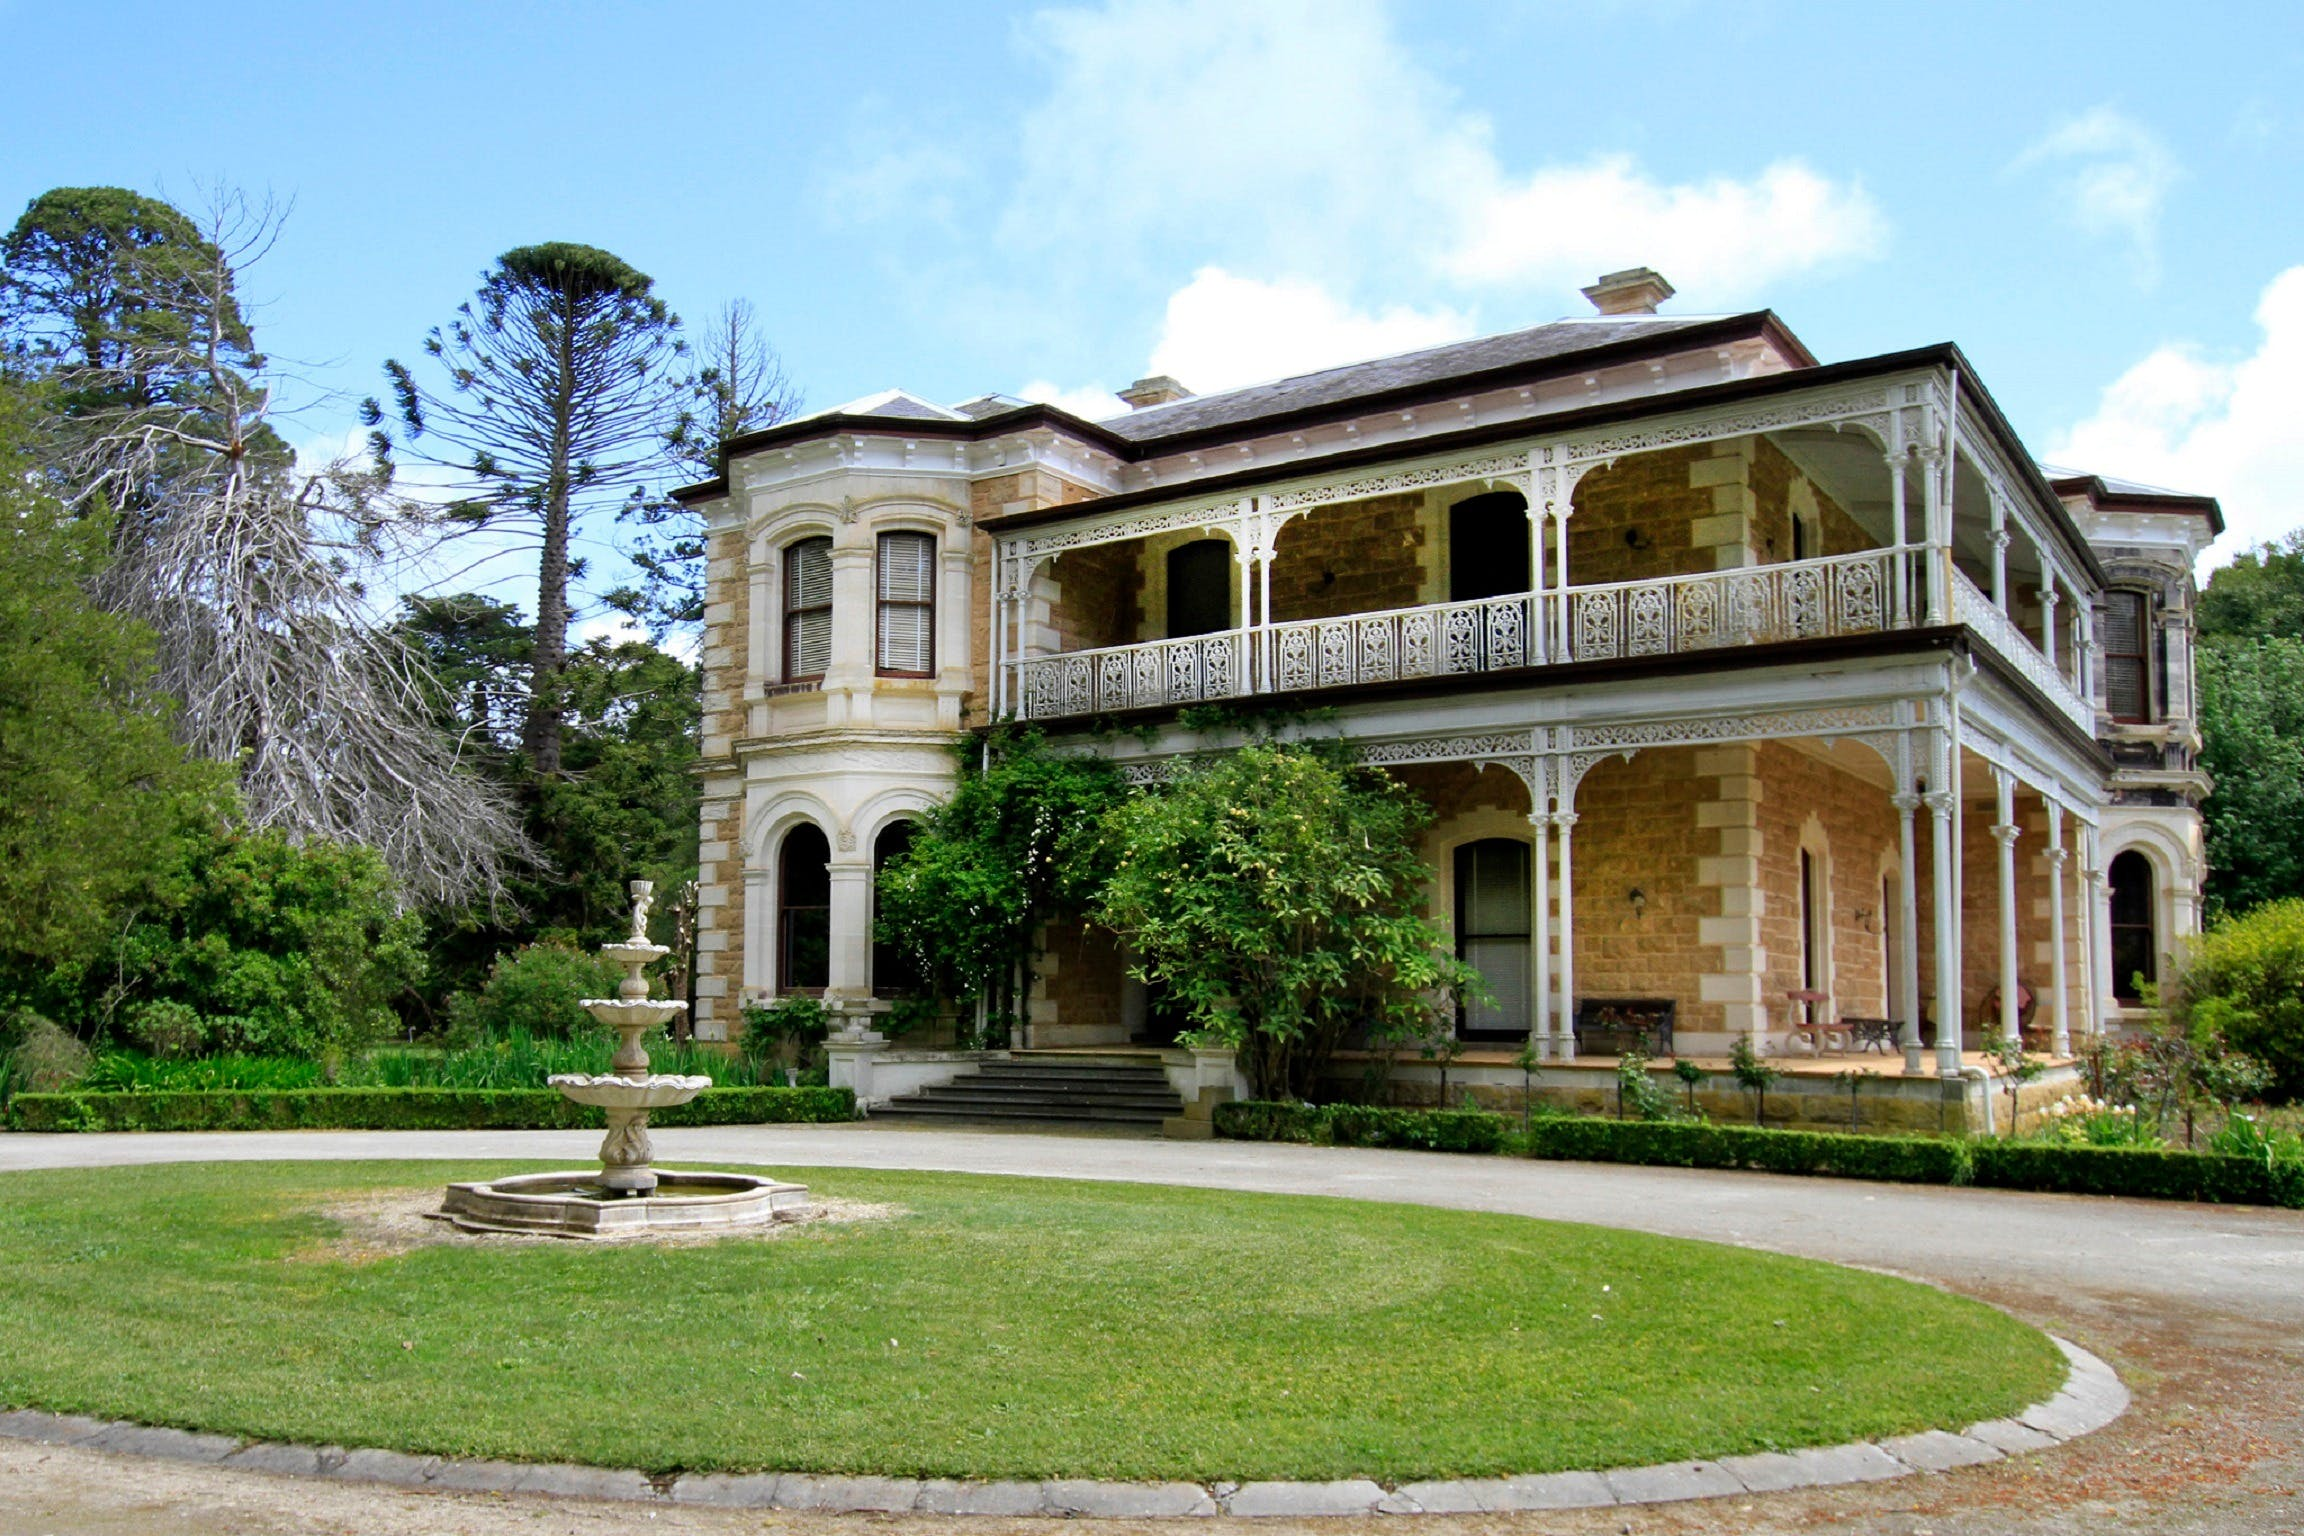 Yallum Park - Accommodation in Bendigo